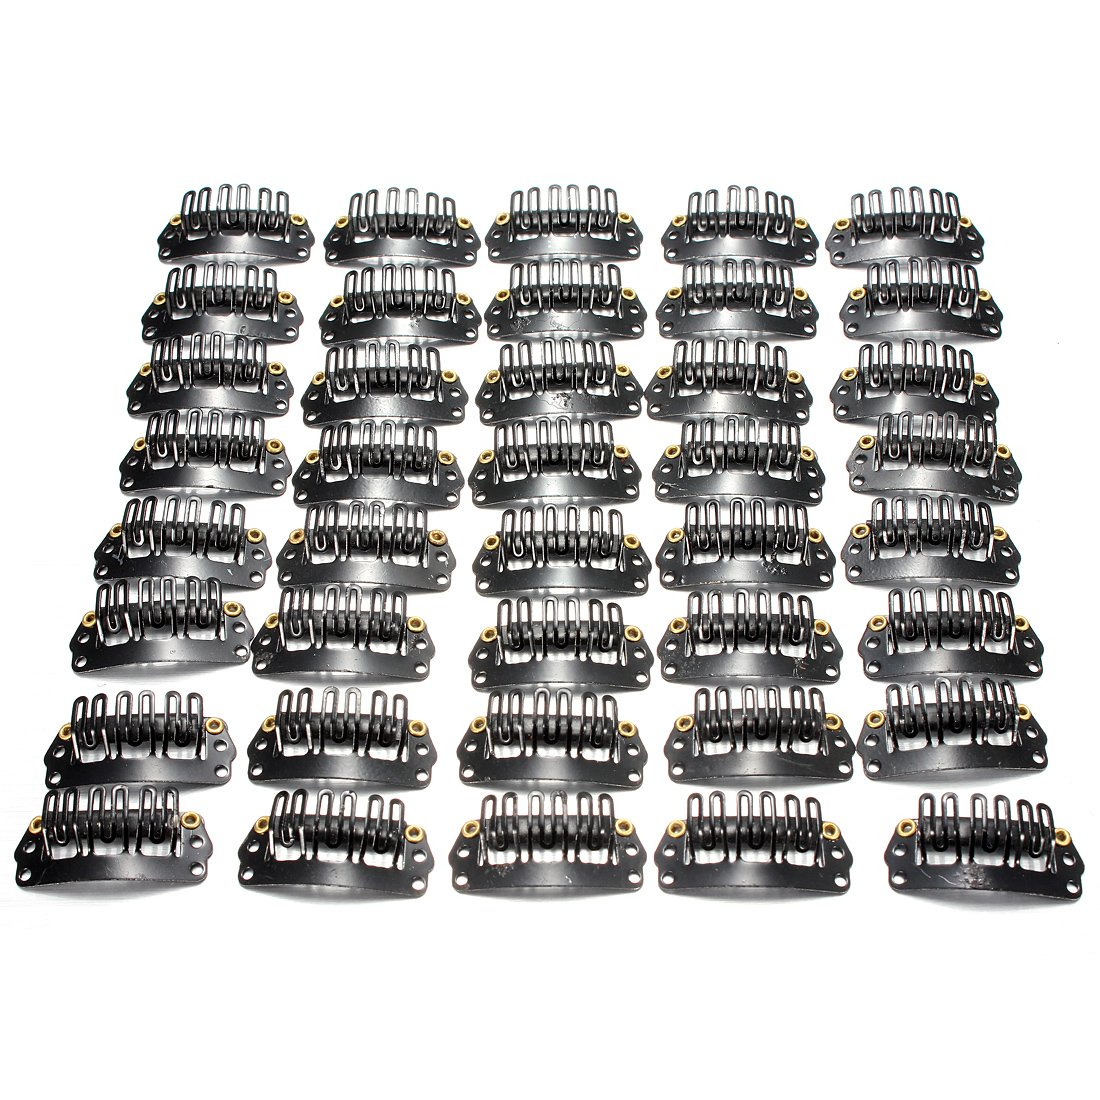 HOT-40pcs U-shaped Clamp For Hair Extensions Wig Clips DIY Comb Black Frame